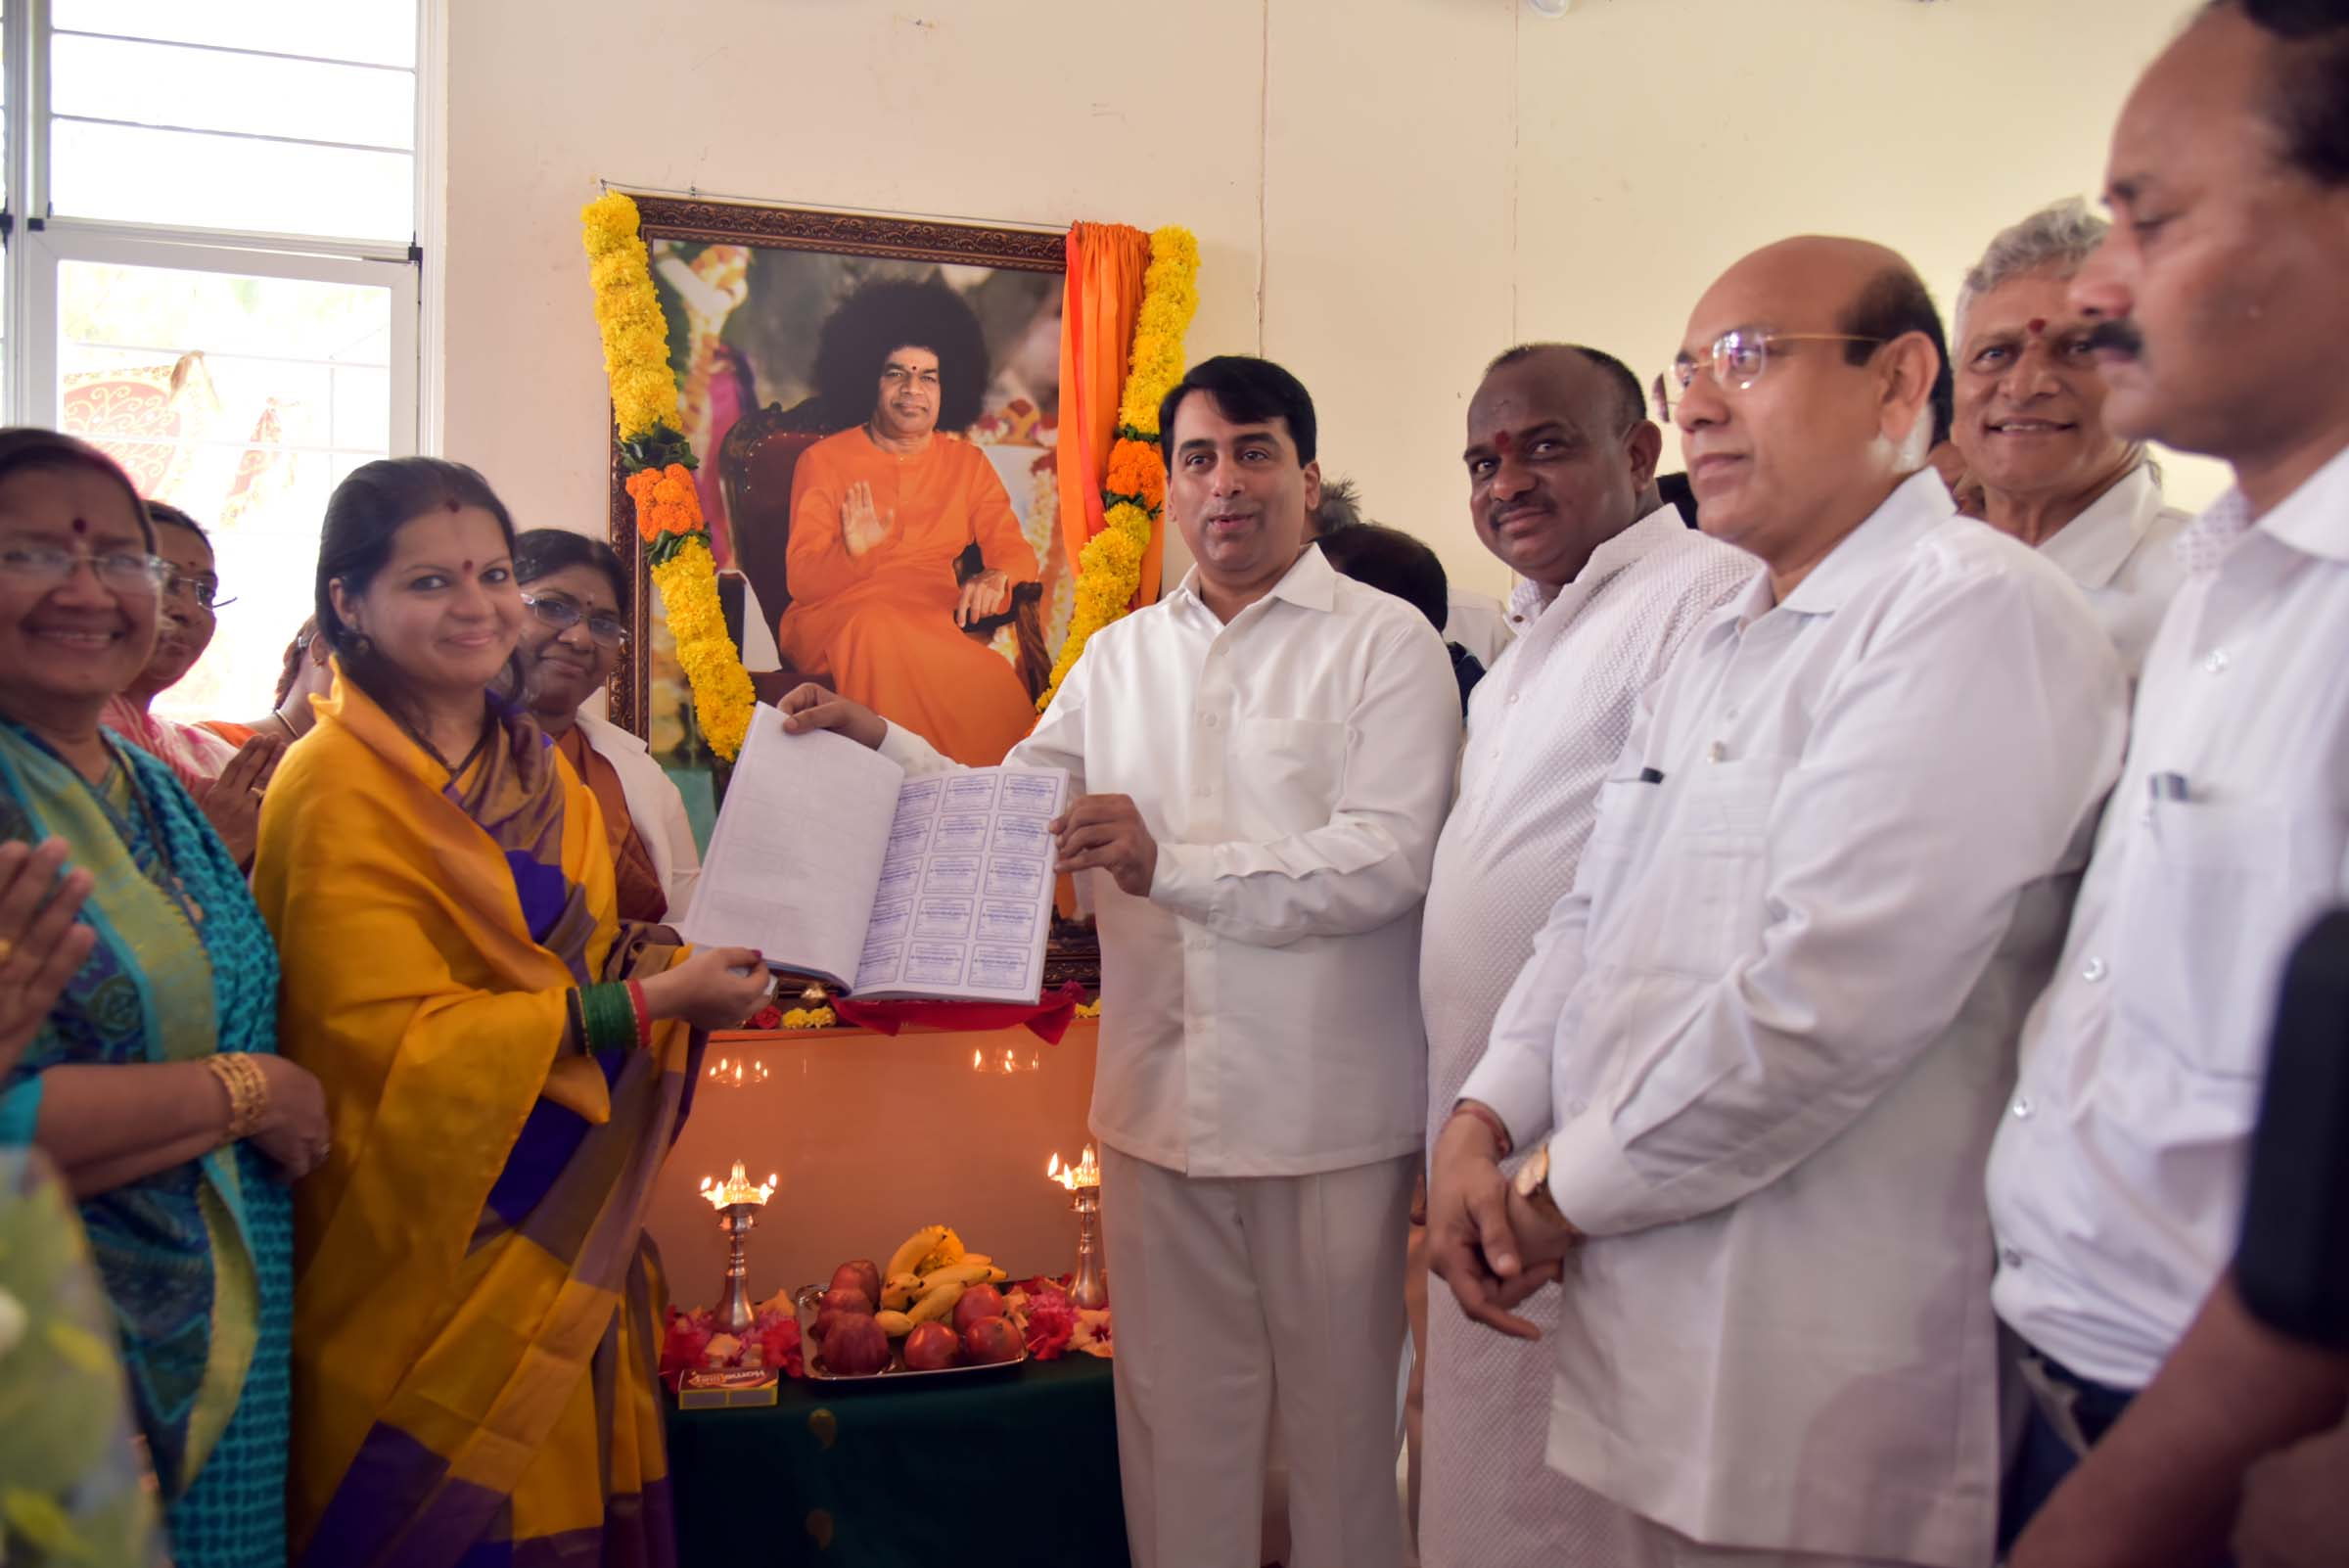 Inauguration of Nithya Anna Prasada Seva Kendram for Pregnant Mahilas ~ SSSSO Vizag District, Andhra Pradesh, India